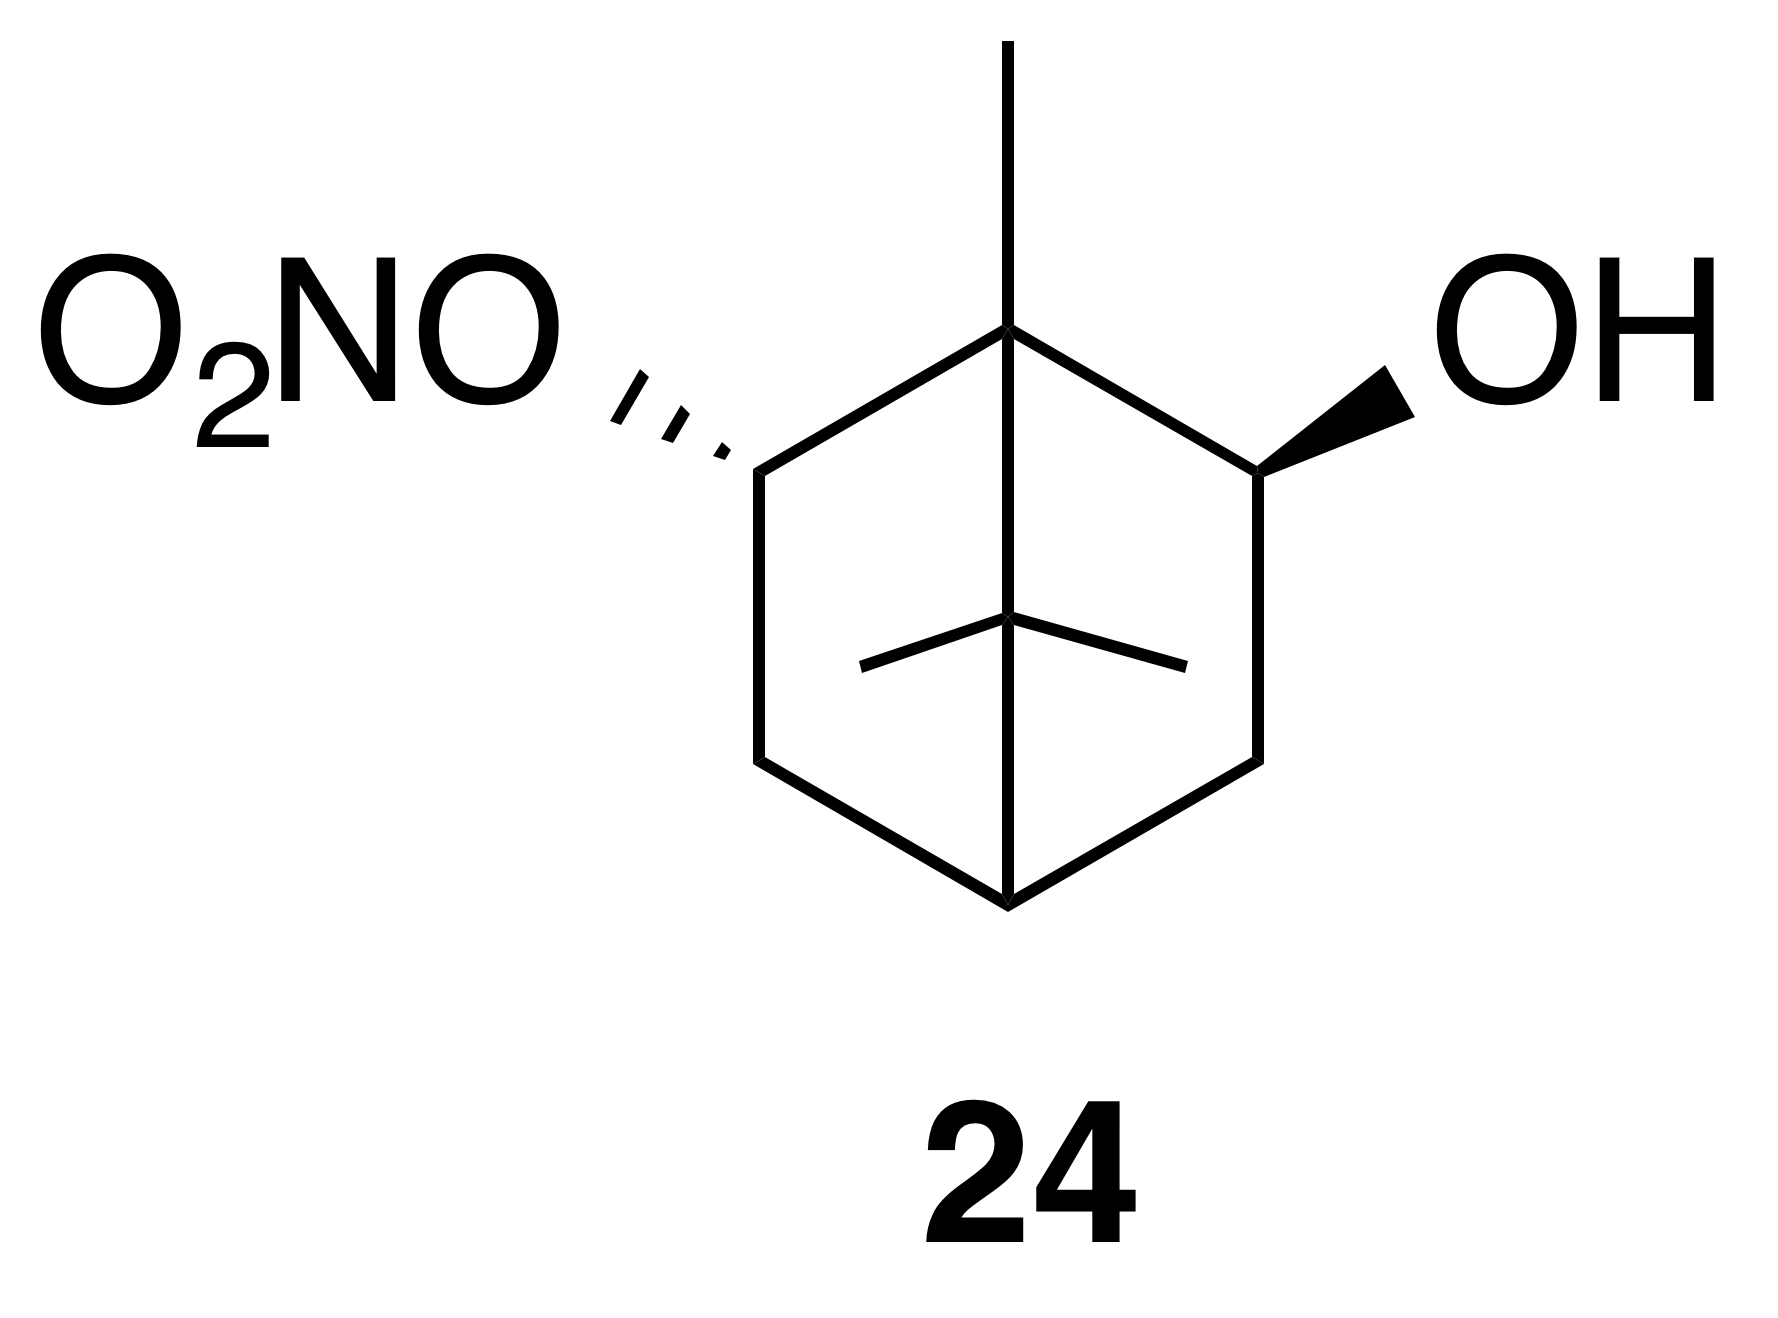 https://www.atmos-chem-phys.net/20/4241/2020/acp-20-4241-2020-g21